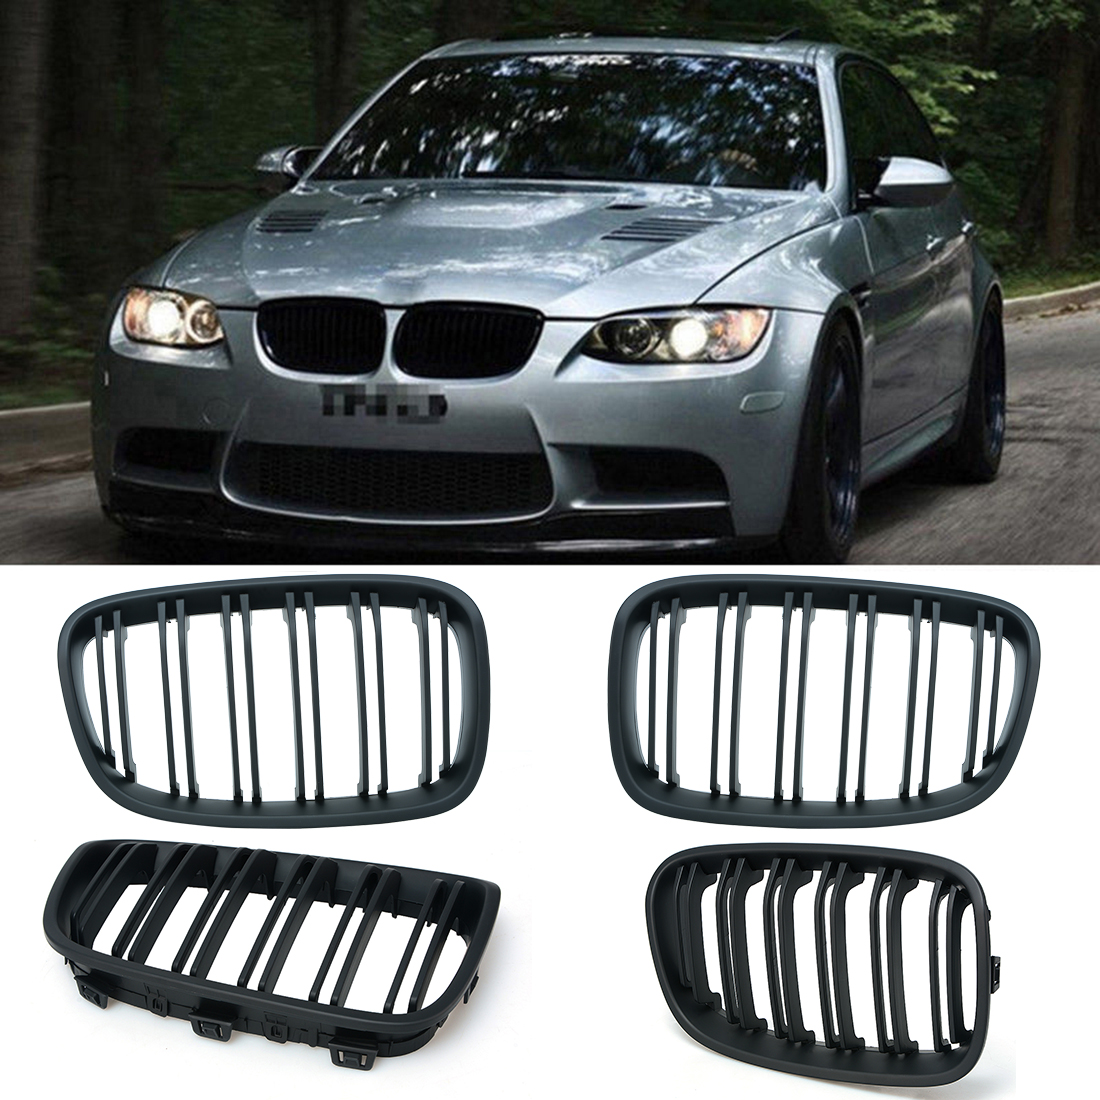 1 Pair Matt Black Front Kidney Grille Grills For BMW F20 1 Series 2011-2014 Car Racing Grille D10 P8 2pcs front grille bumper hood grill grilles automobile front kidney grille for bmw 1 series f20 2012 2014 glossy black